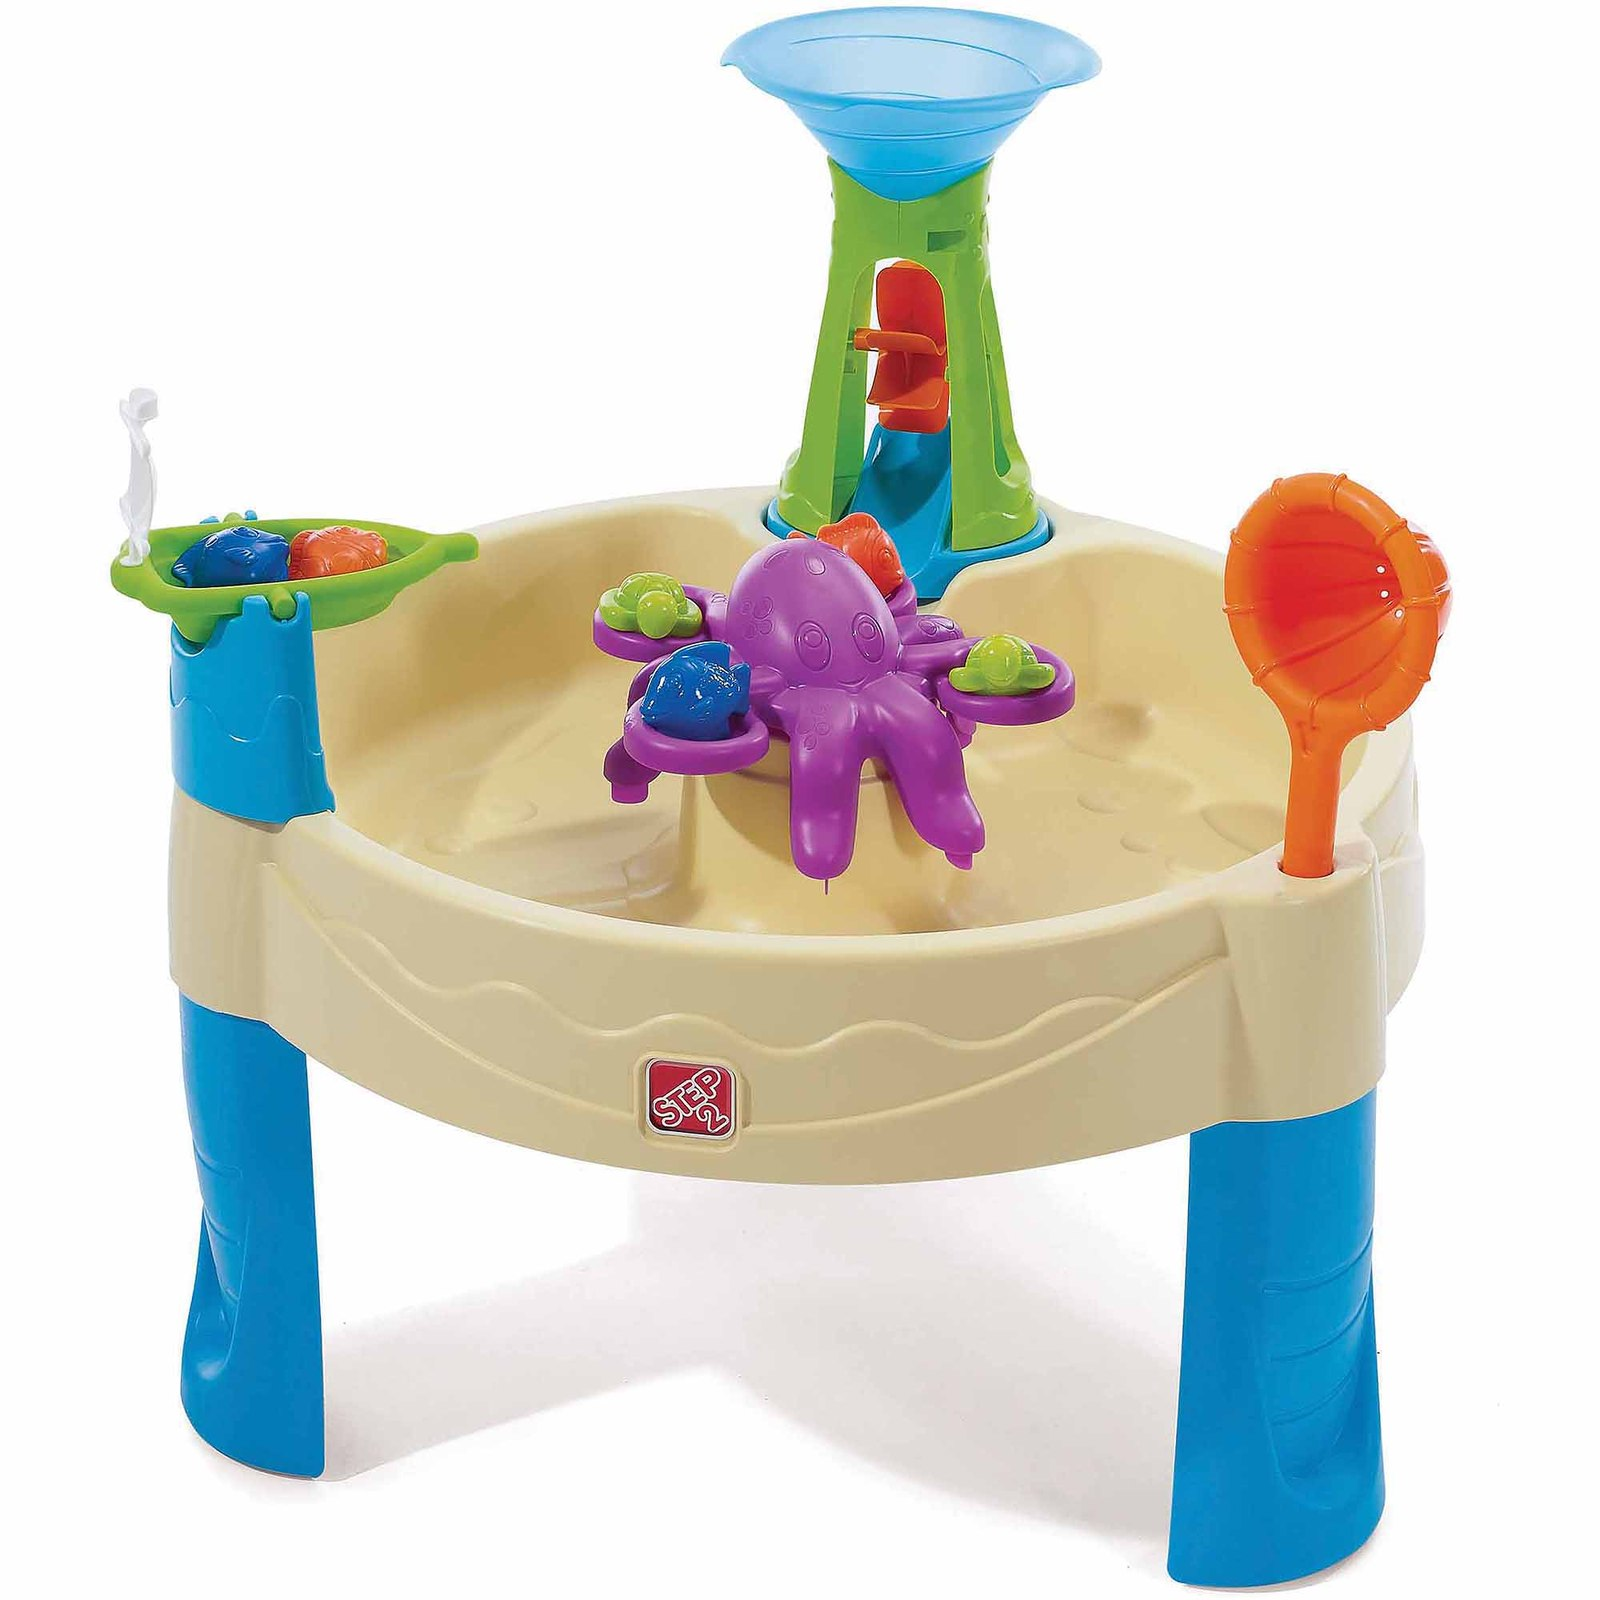 Toys For Water : Playset water table sand box toys play game and similar items